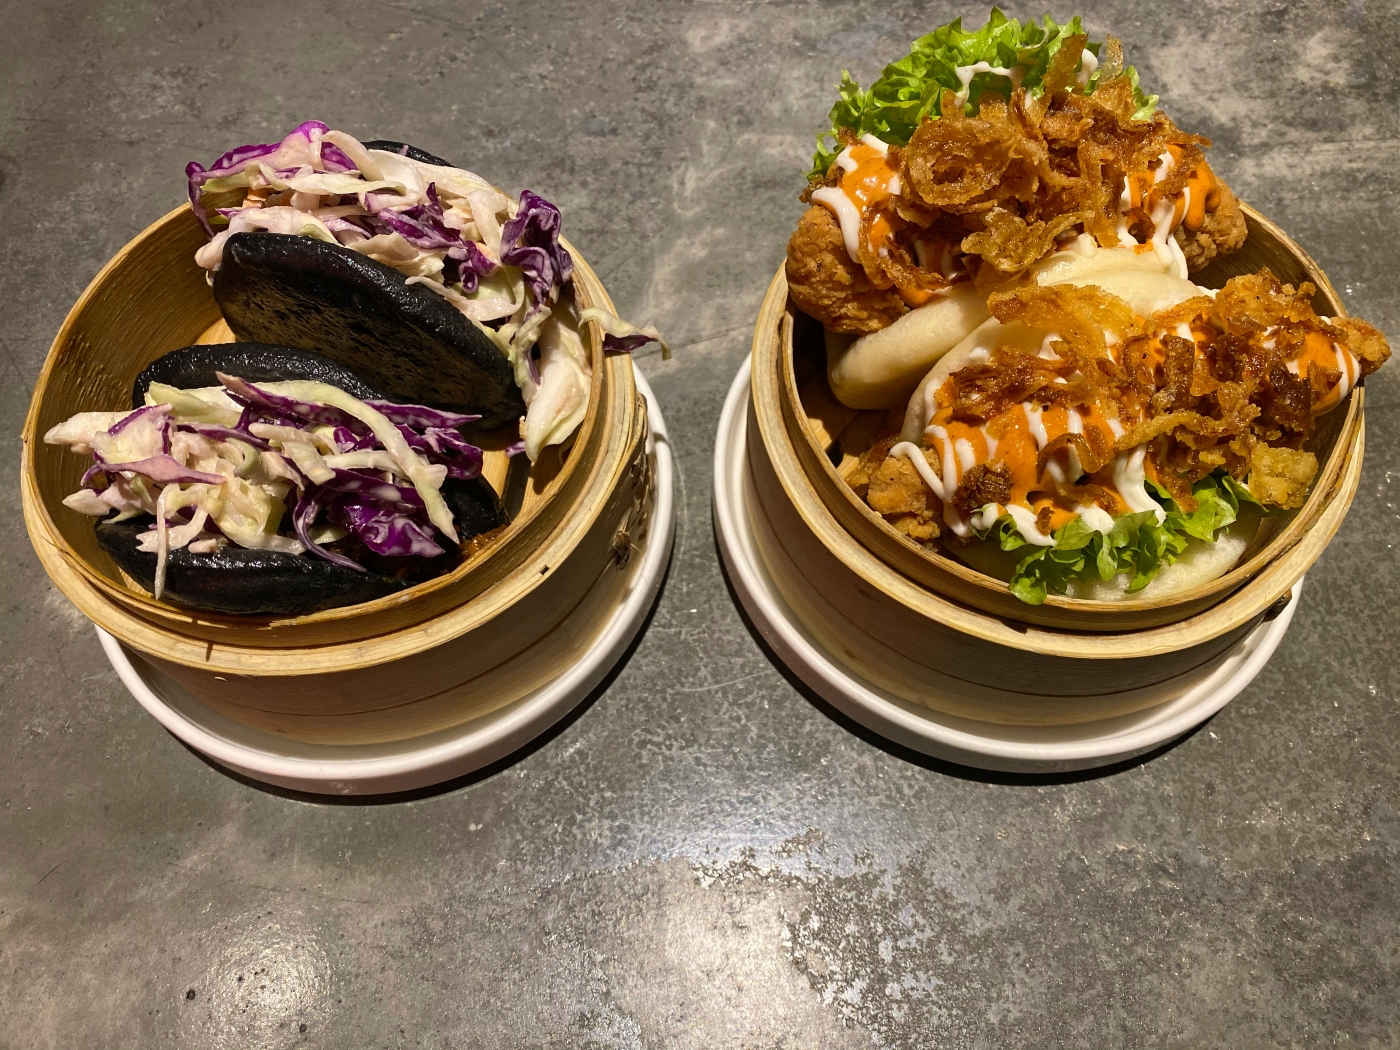 A photo of slow cooked beef brisket baos with smoky BBQ barbecue sauce in charcoal buns and chicken loca baos with crispy onions and chipotle sauce at Baozi باوزي a restaurant in Riyadh, Saudi Arabia. Photo Courtesy of FoodWaterShoes